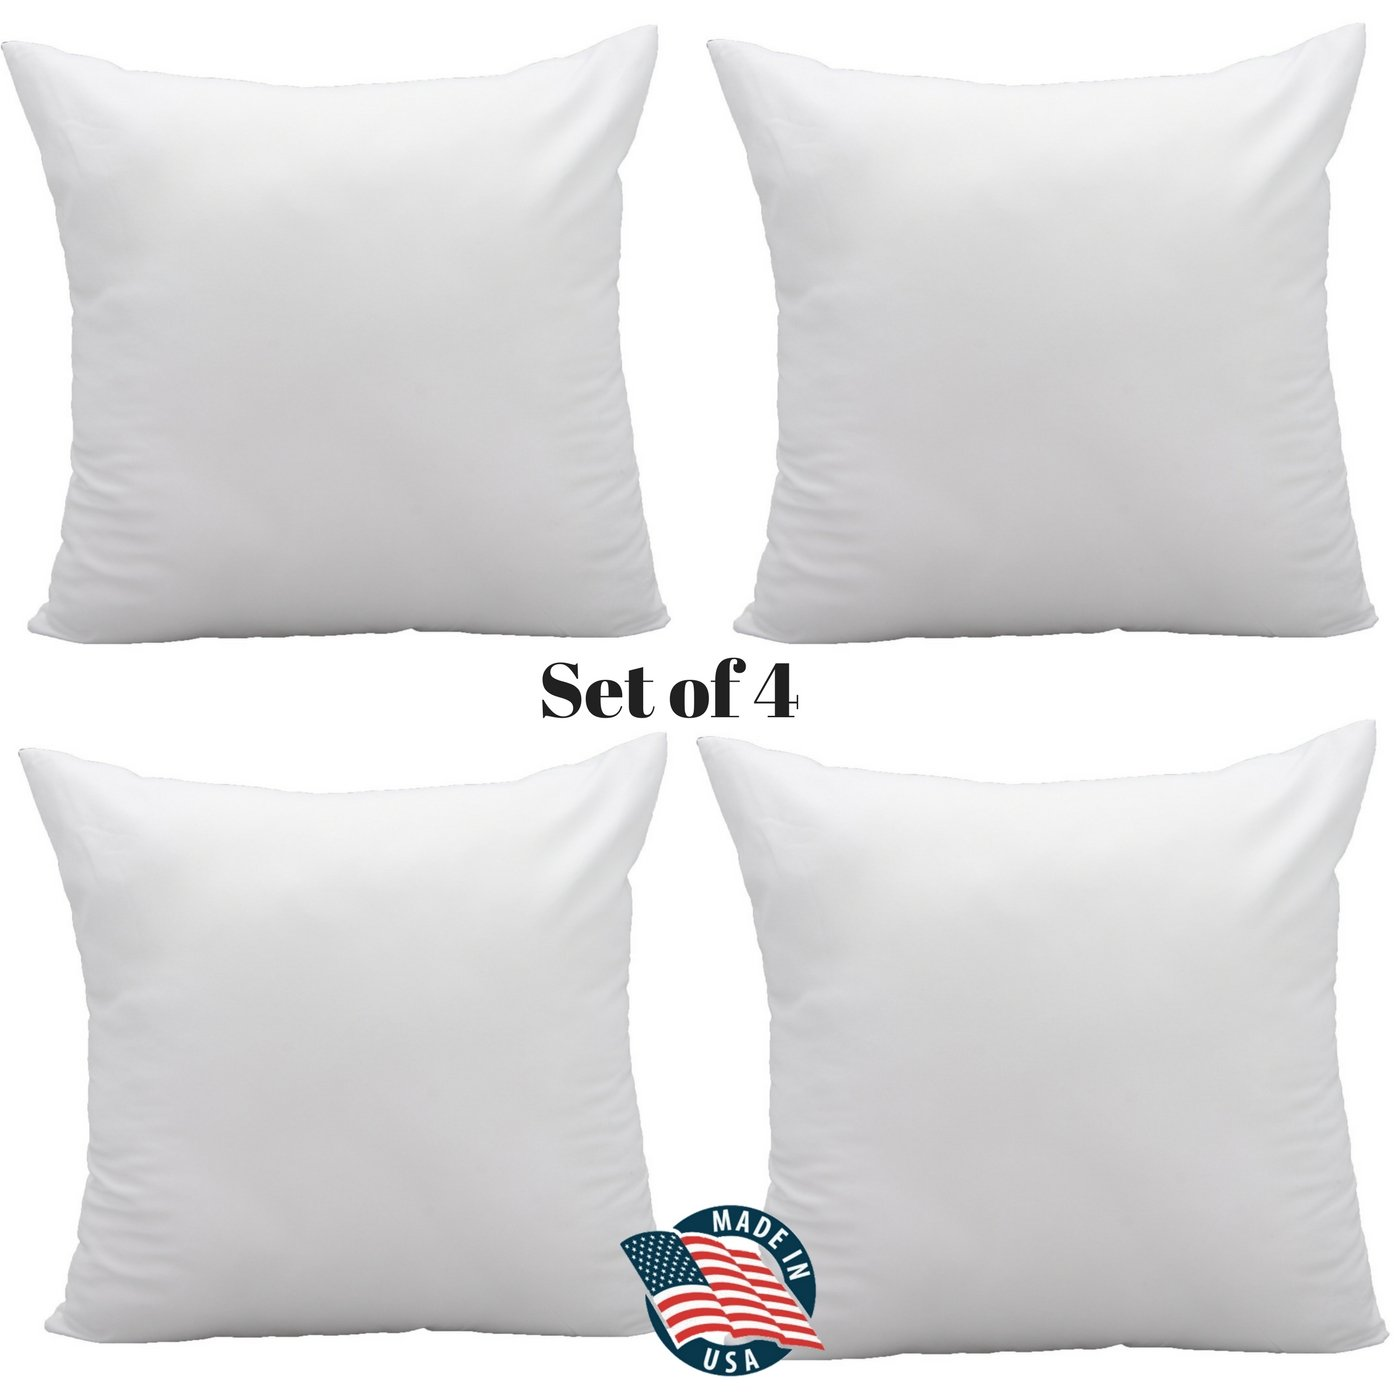 Pack of 4 Pal Fabric Soft Microfiber Square Pillow Insert for Sham or Decorative pillow Made in USA (14x14)